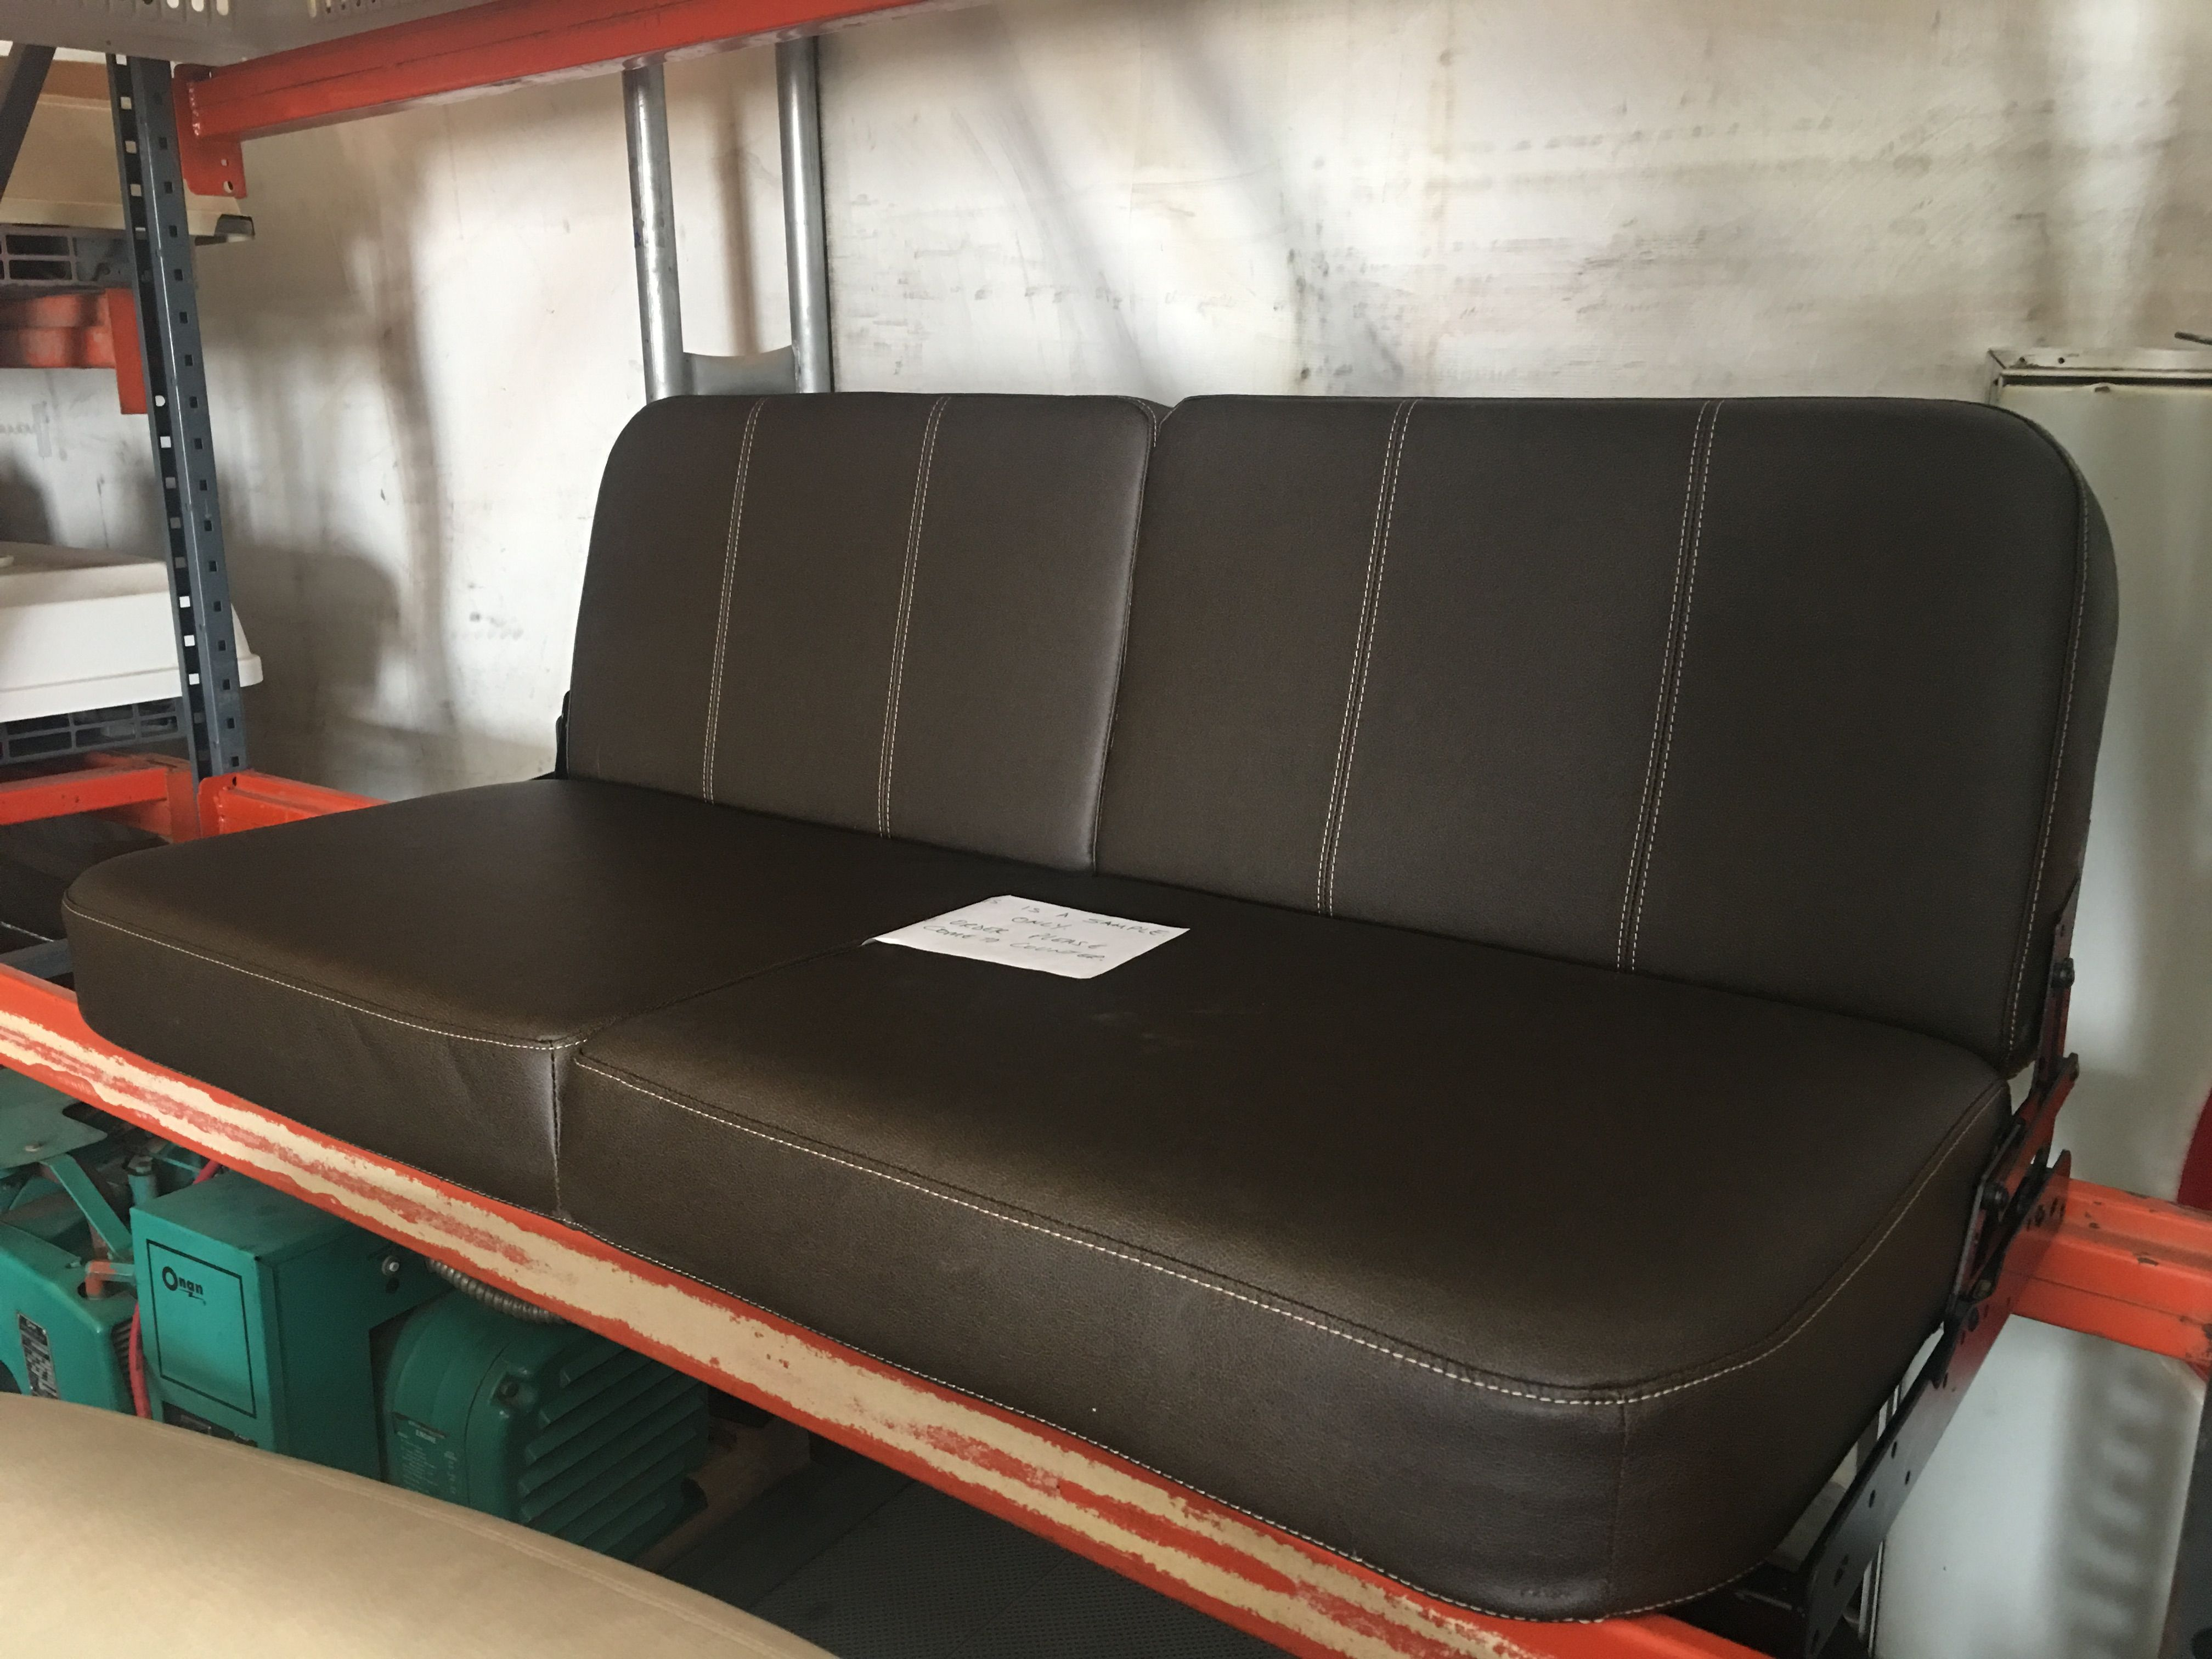 rv jackknife couches at arizona rv salvage rv furniture top picks rh pinterest com